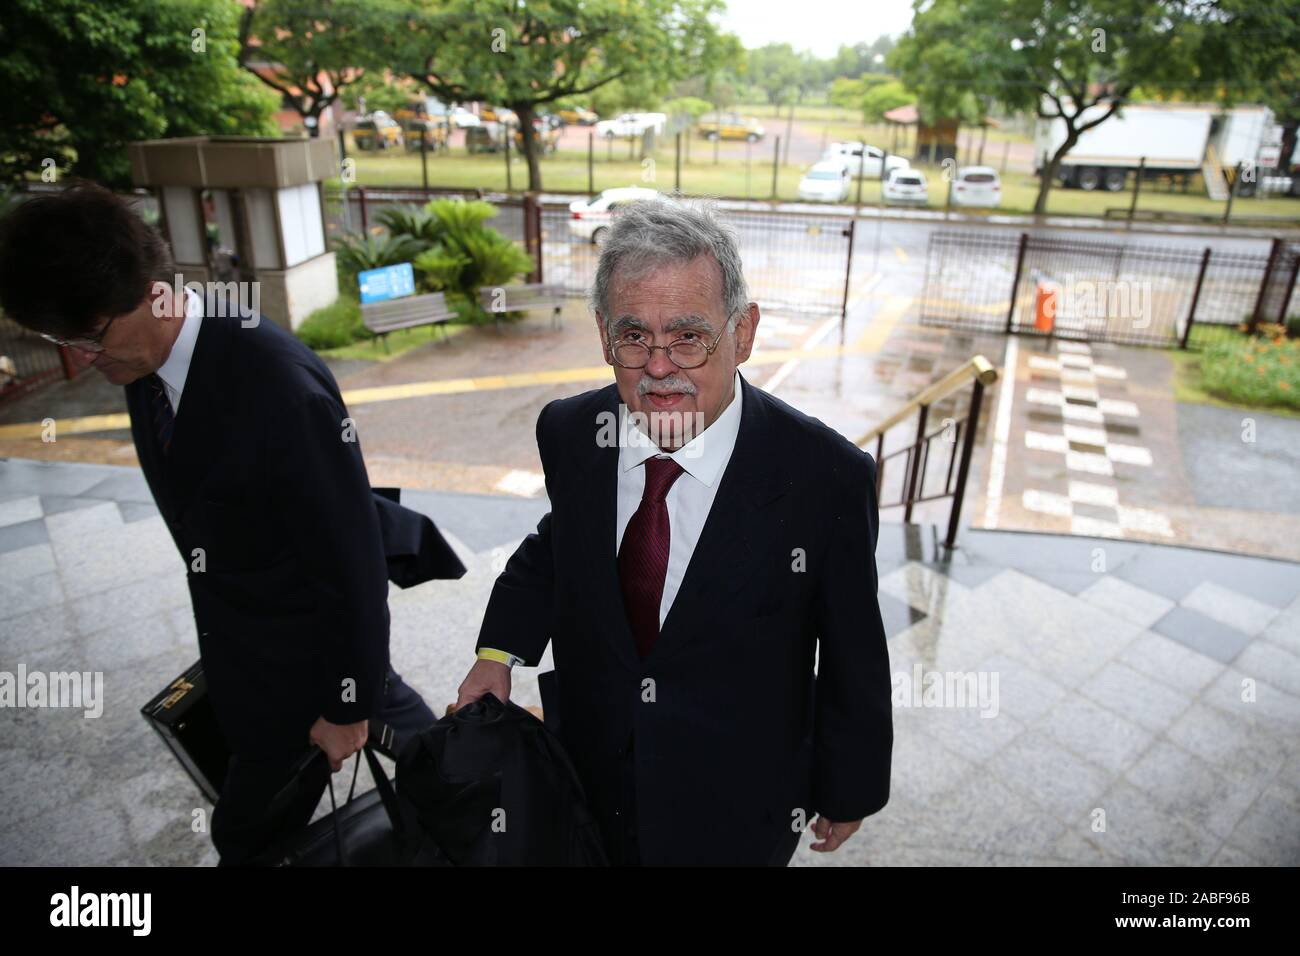 Trial of the criminal appeal of former President Luiz Inacio Lula da Silva and 10 more defendants by the 8th Panel of the Federal Regional Court of the 4th Region (TRF4). Sítio de Atibaia&#3lawsuit fot found the transfer of undue advantage by contractors OAS and Odebrecand rancher José Carlos BumlBumlai for the payment of property reforms, which would have as real owner, according to the sentence of the 13th Federal Court of Curitiba, the former President Lula. Stock Photo